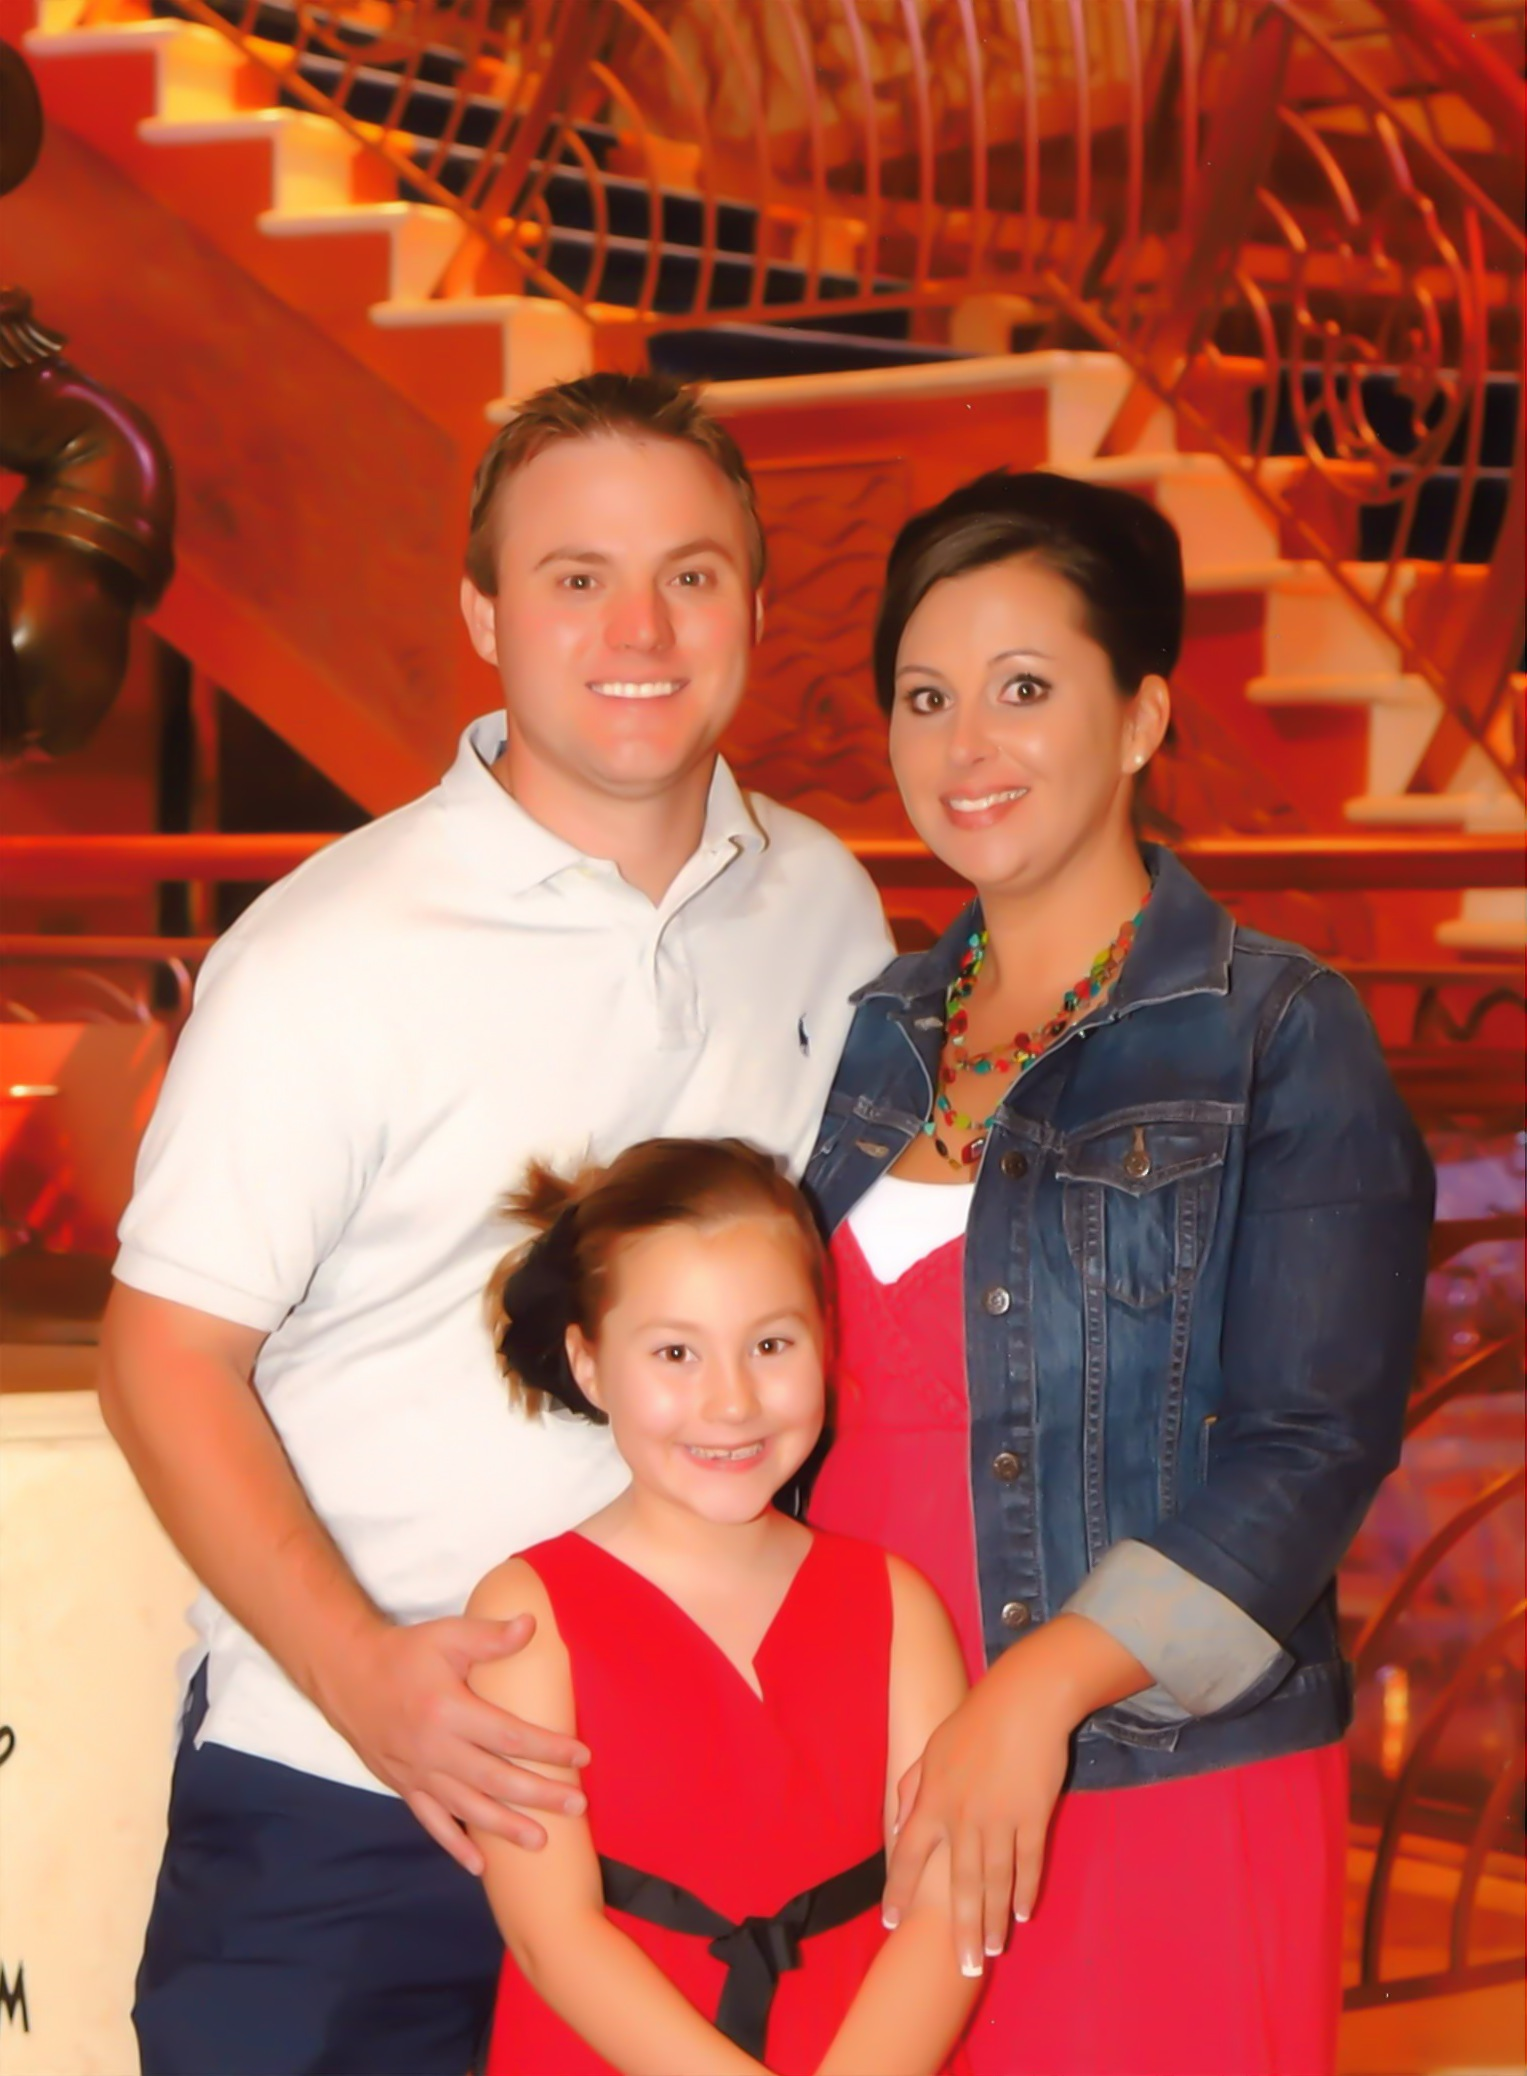 Photo is Sarah, husband Dustyn, and daughter Ashley